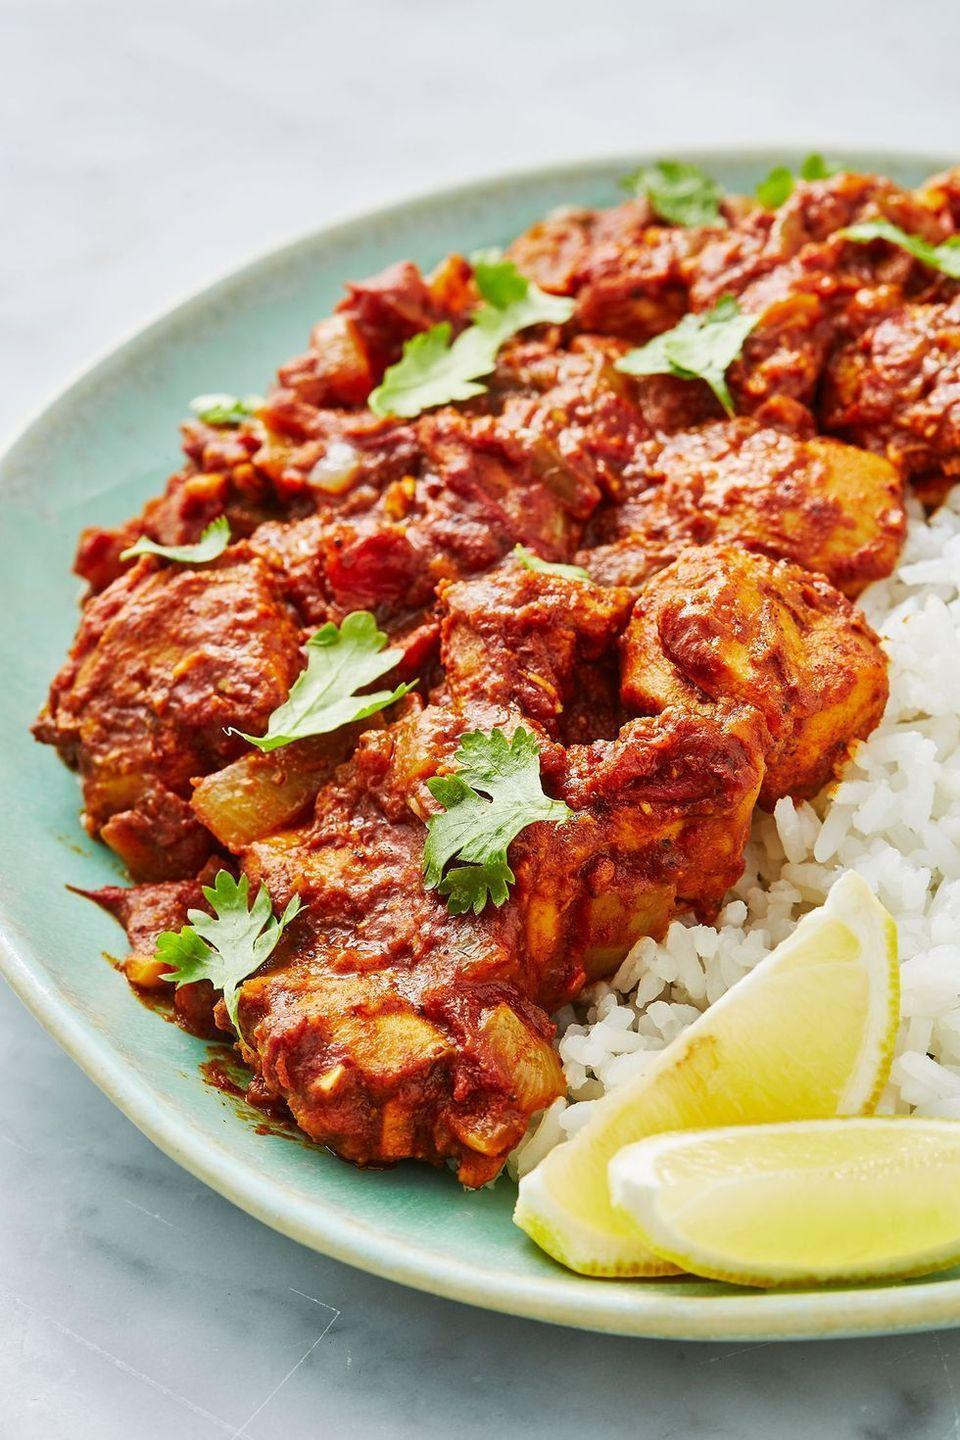 """<p>We love this easy, healthy chicken bhuna recipe, a sure-fire dinner table win - the ultimate crowd pleaser. </p><p>Get the <a href=""""https://www.delish.com/uk/cooking/recipes/a28867202/chicken-bhuna/"""" rel=""""nofollow noopener"""" target=""""_blank"""" data-ylk=""""slk:Chicken Bhuna"""" class=""""link rapid-noclick-resp"""">Chicken Bhuna</a> recipe.</p>"""